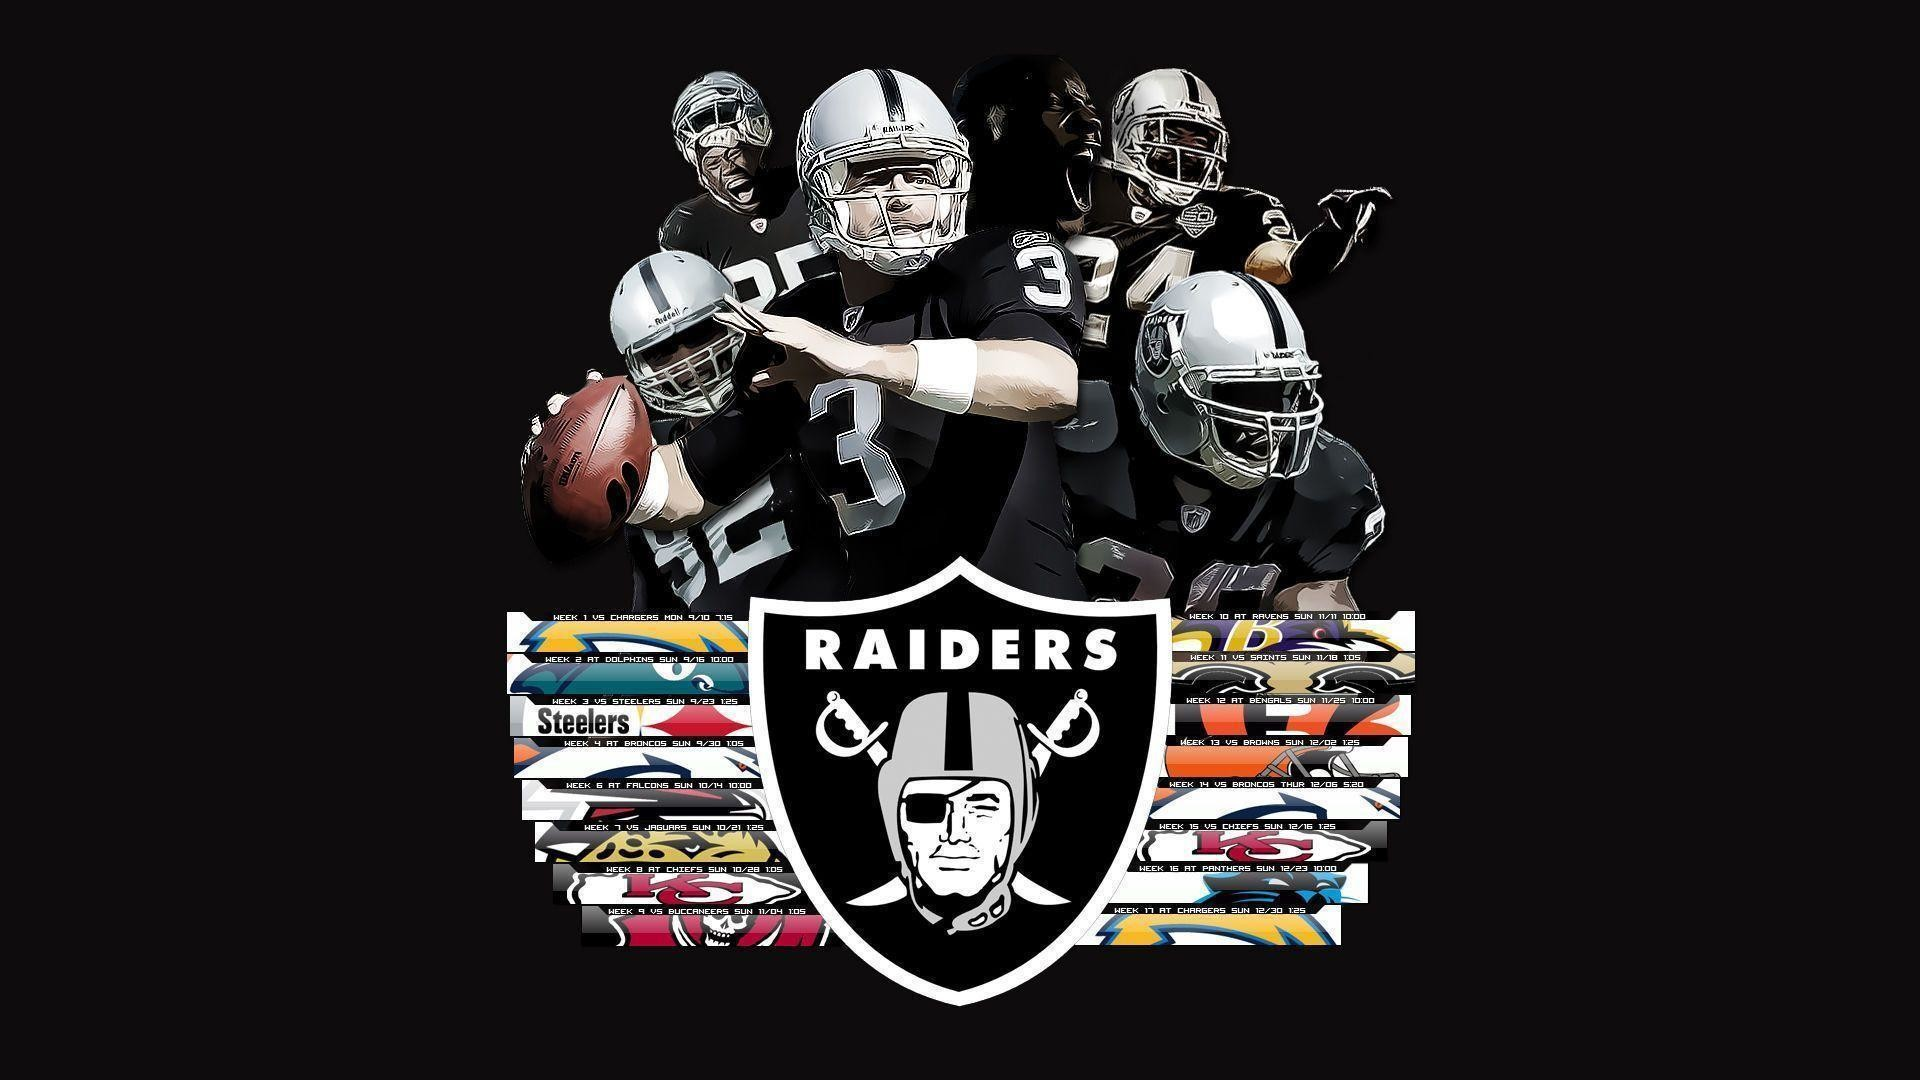 1920x1080 Raiders 2016 Wallpapers - Wallpaper Cave